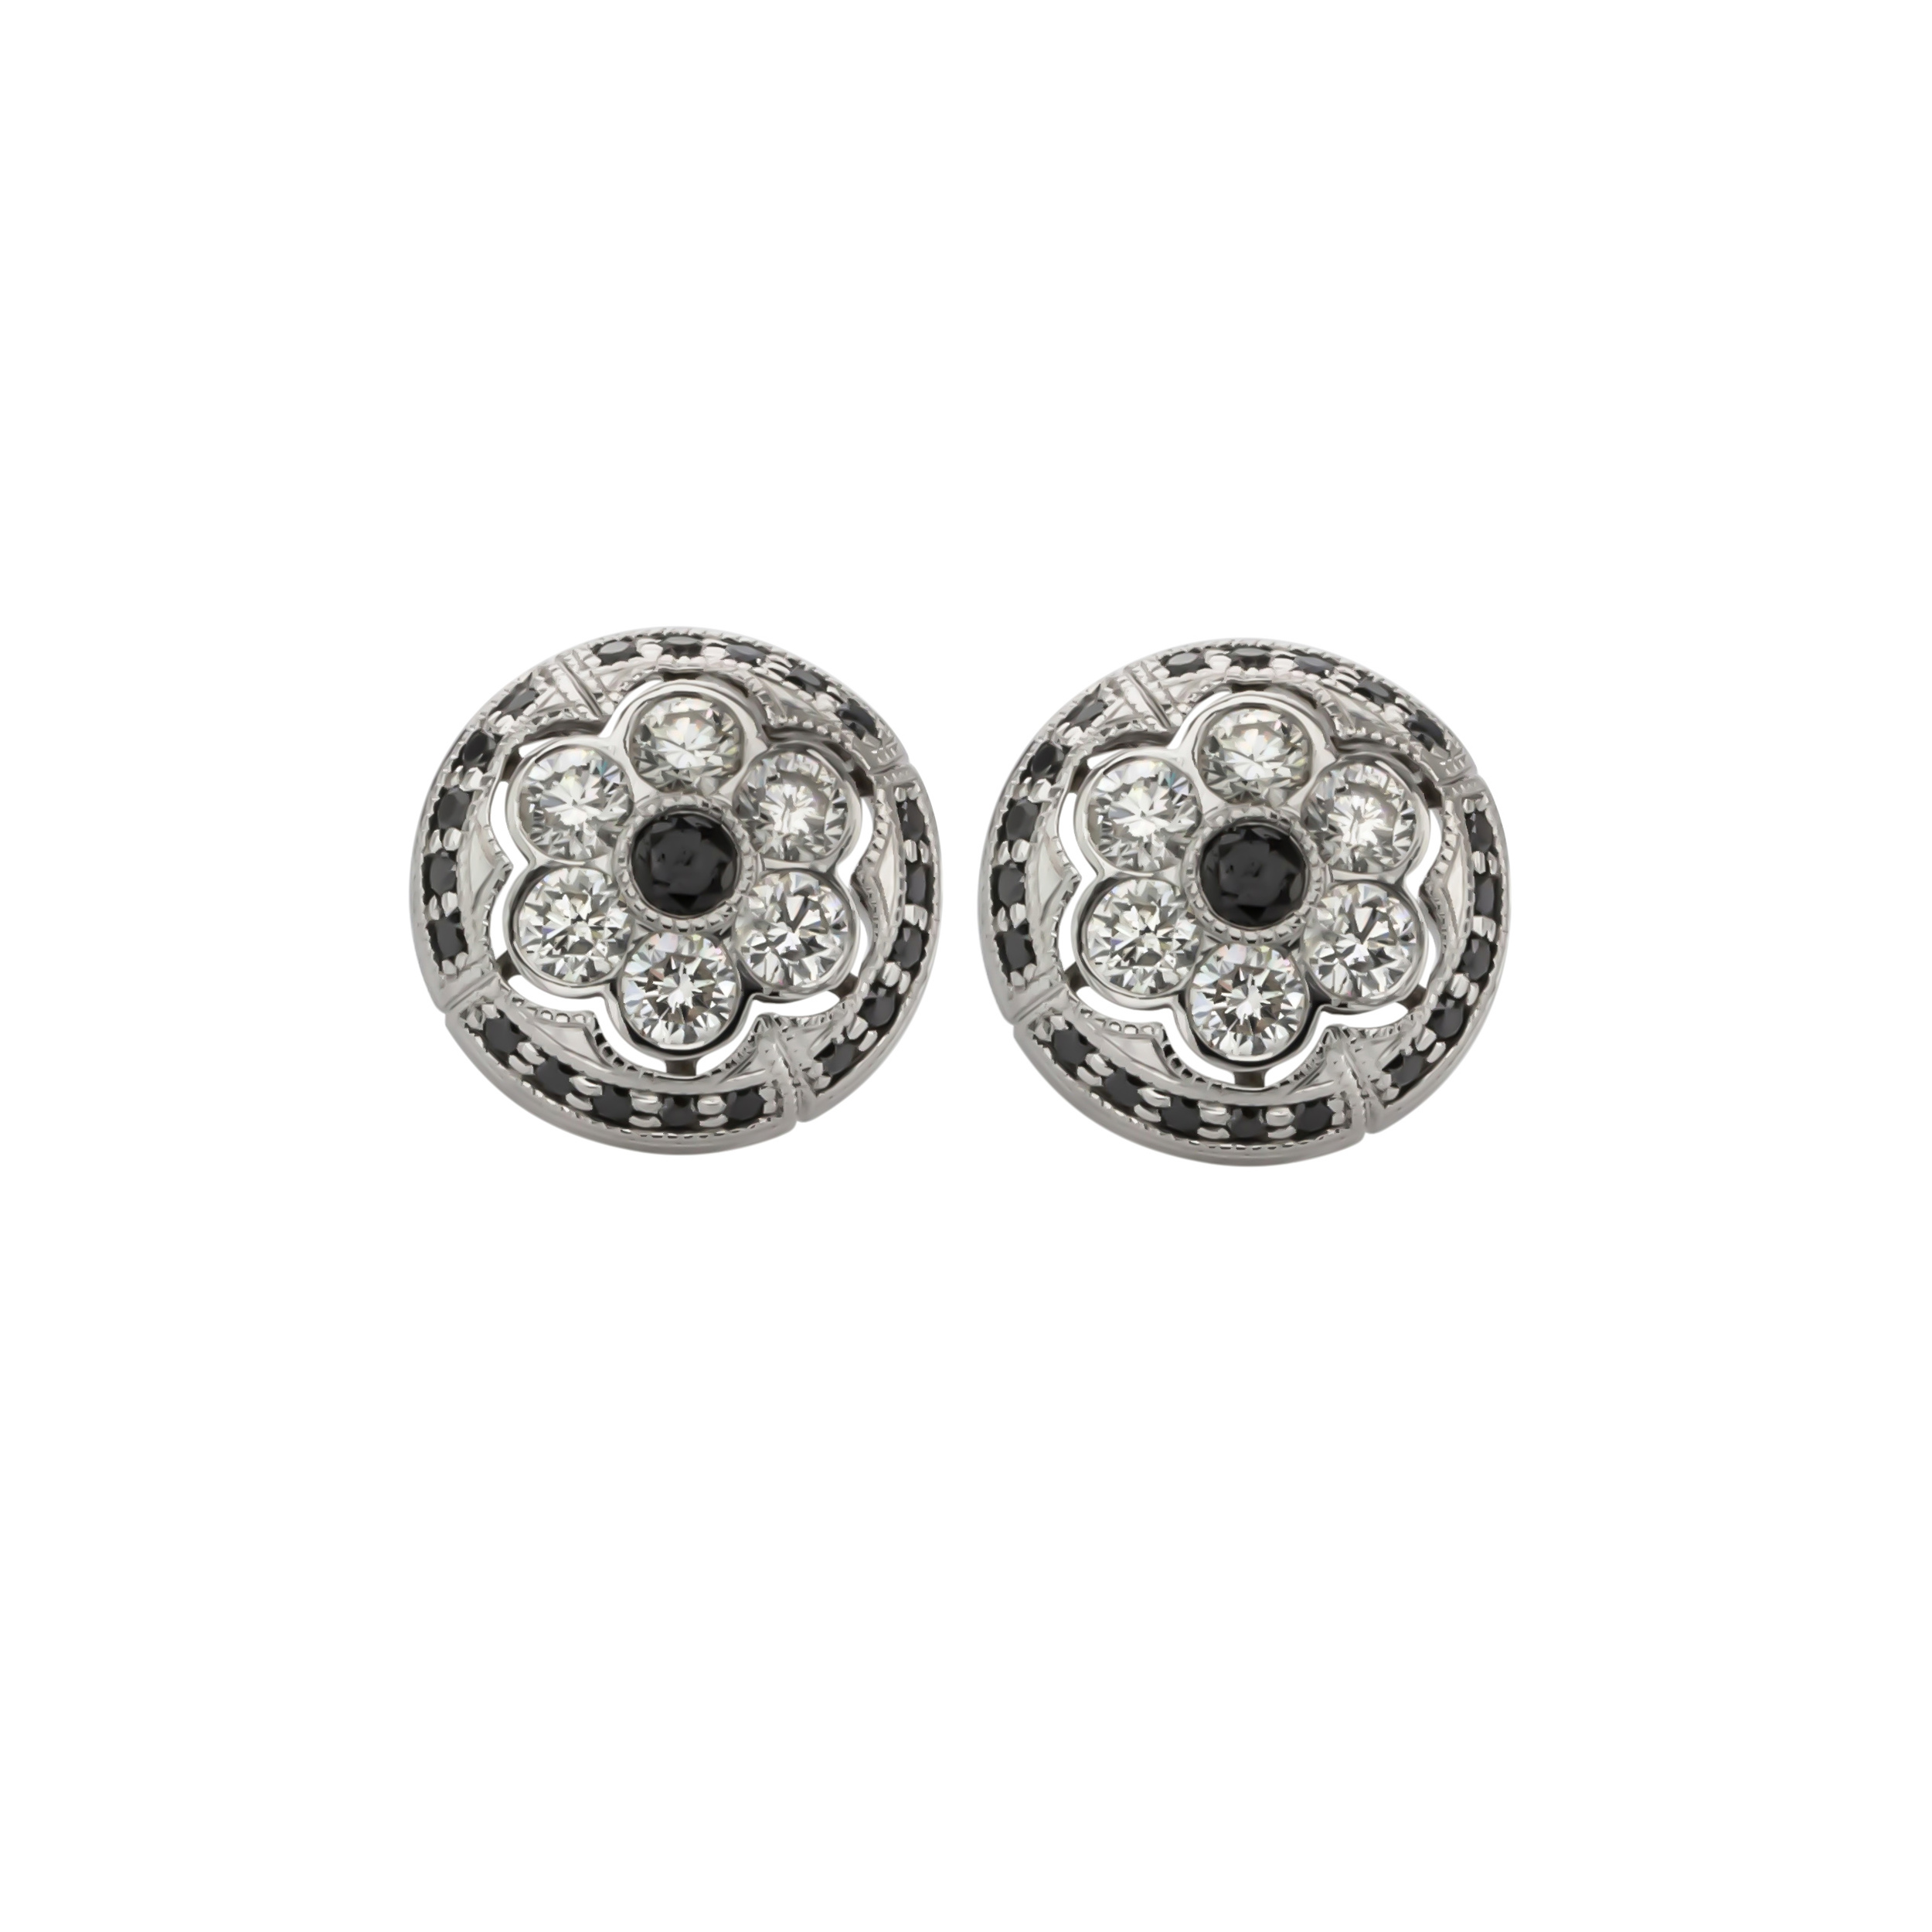 CUSTOM BLACK AND WHITE DIAMOND EARRINGS inspired and designed to replace our client's favorite pair of fashion earrings.